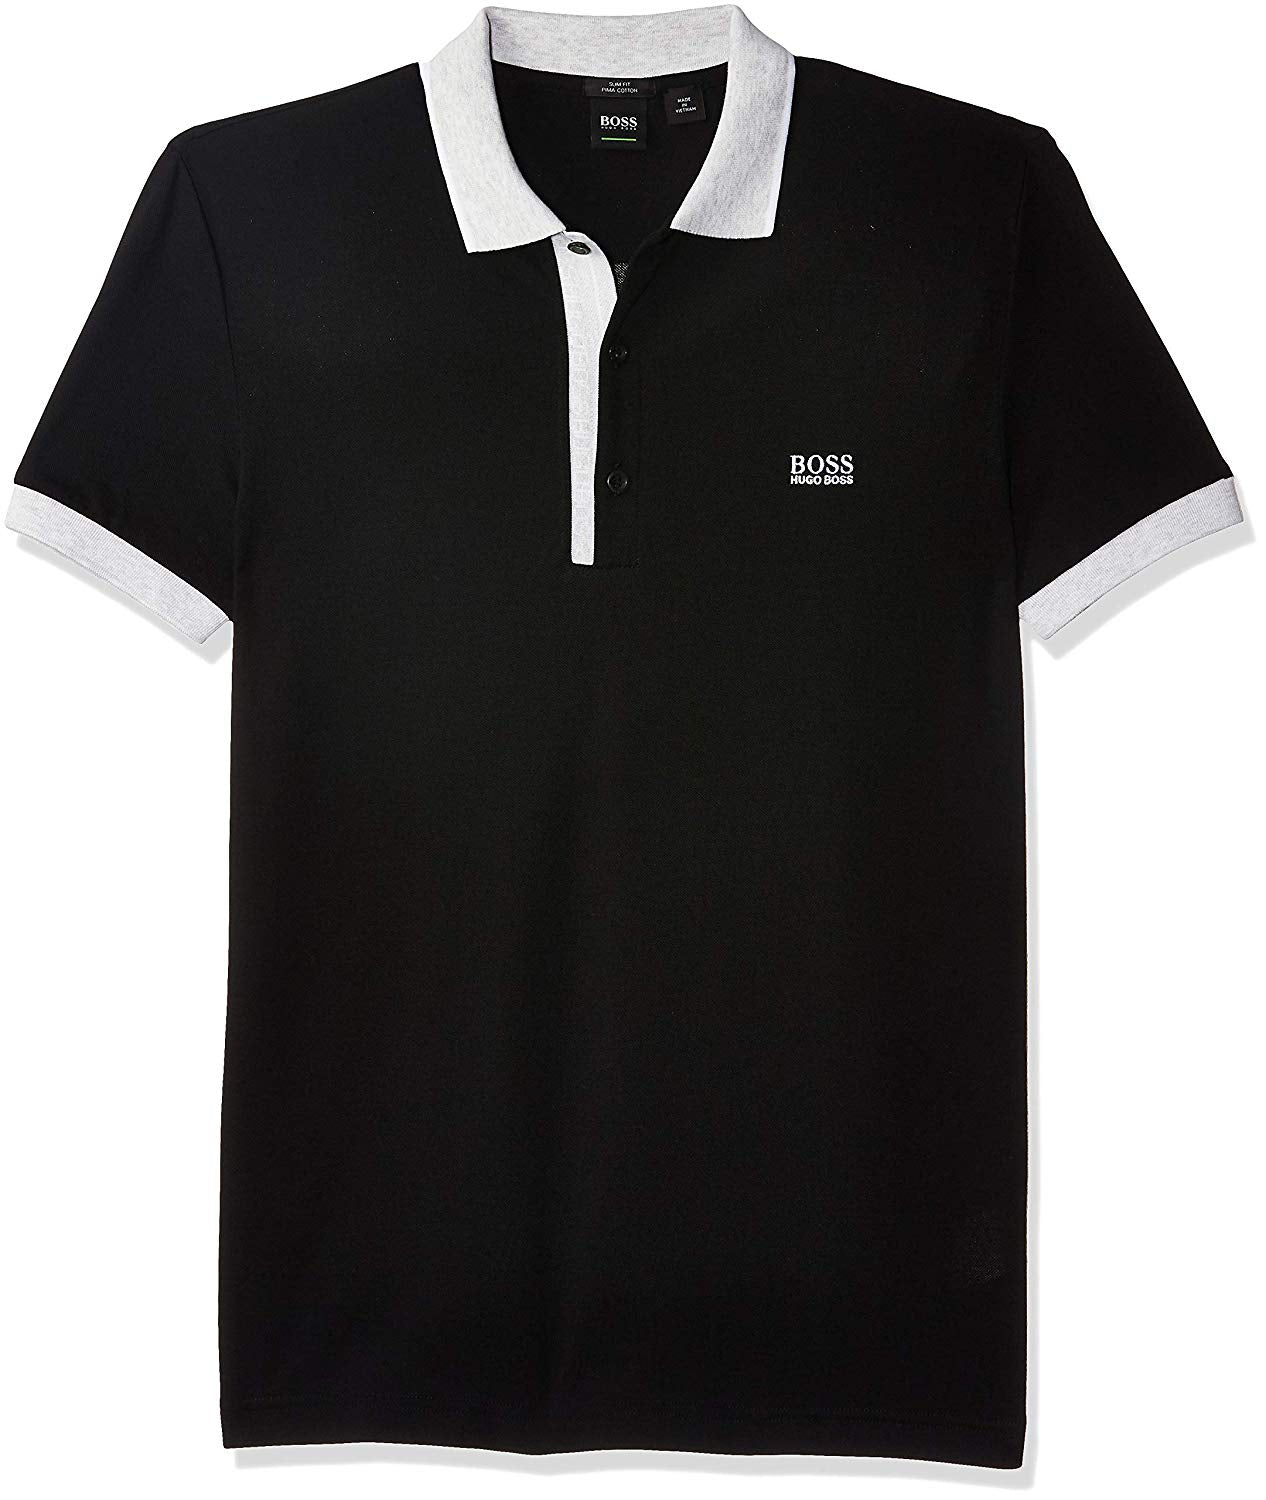 HUGO BOSS PAULE 4 MEN'S POLO 50399185-004